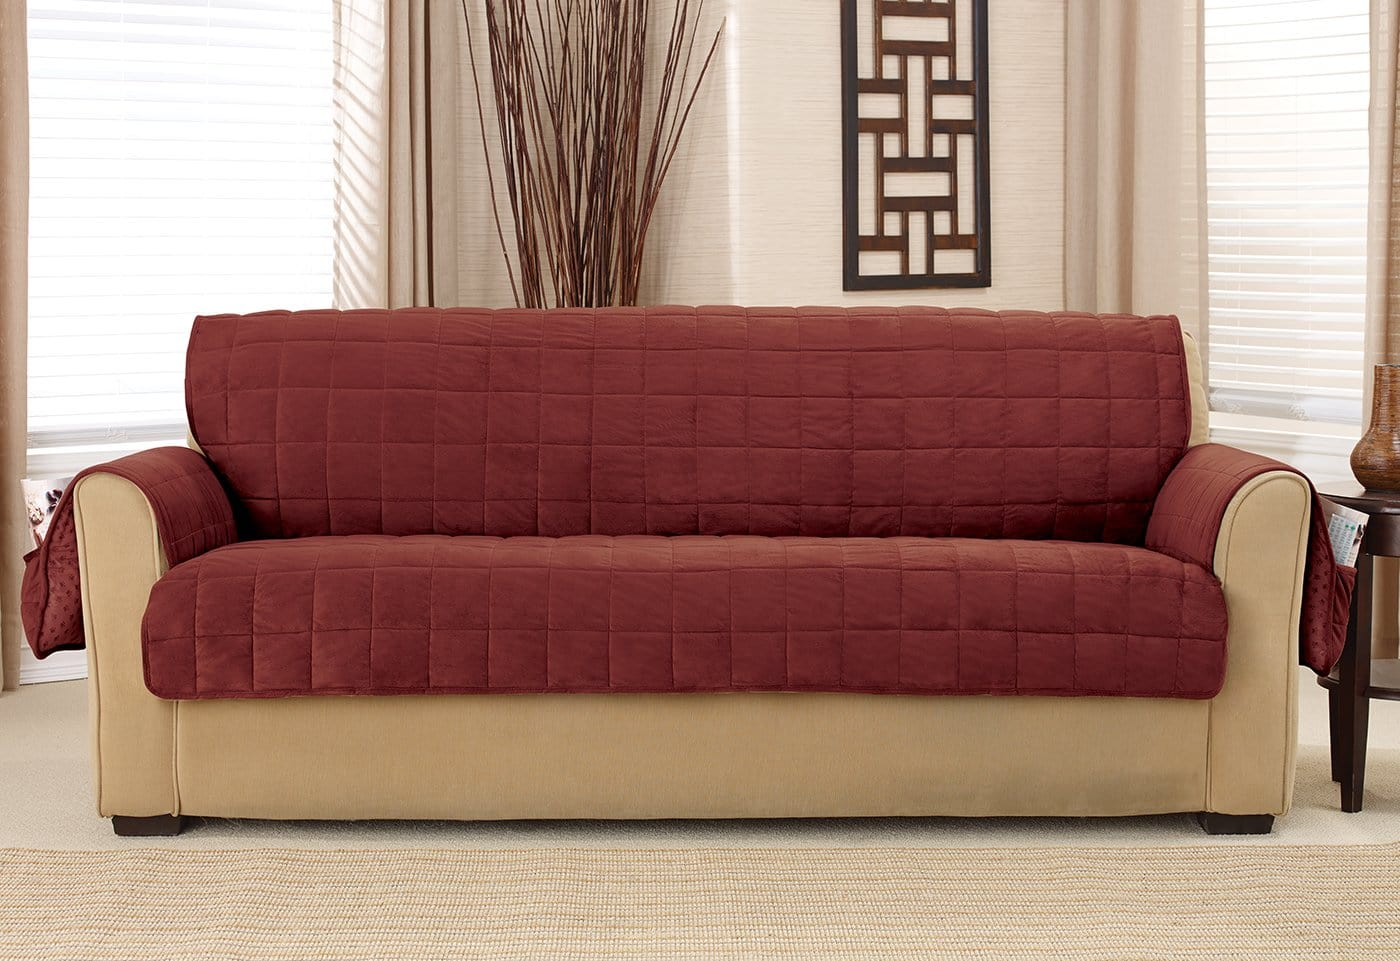 Deep Pile Velvet Furniture Sofa Covers - Sofa / Burgundy